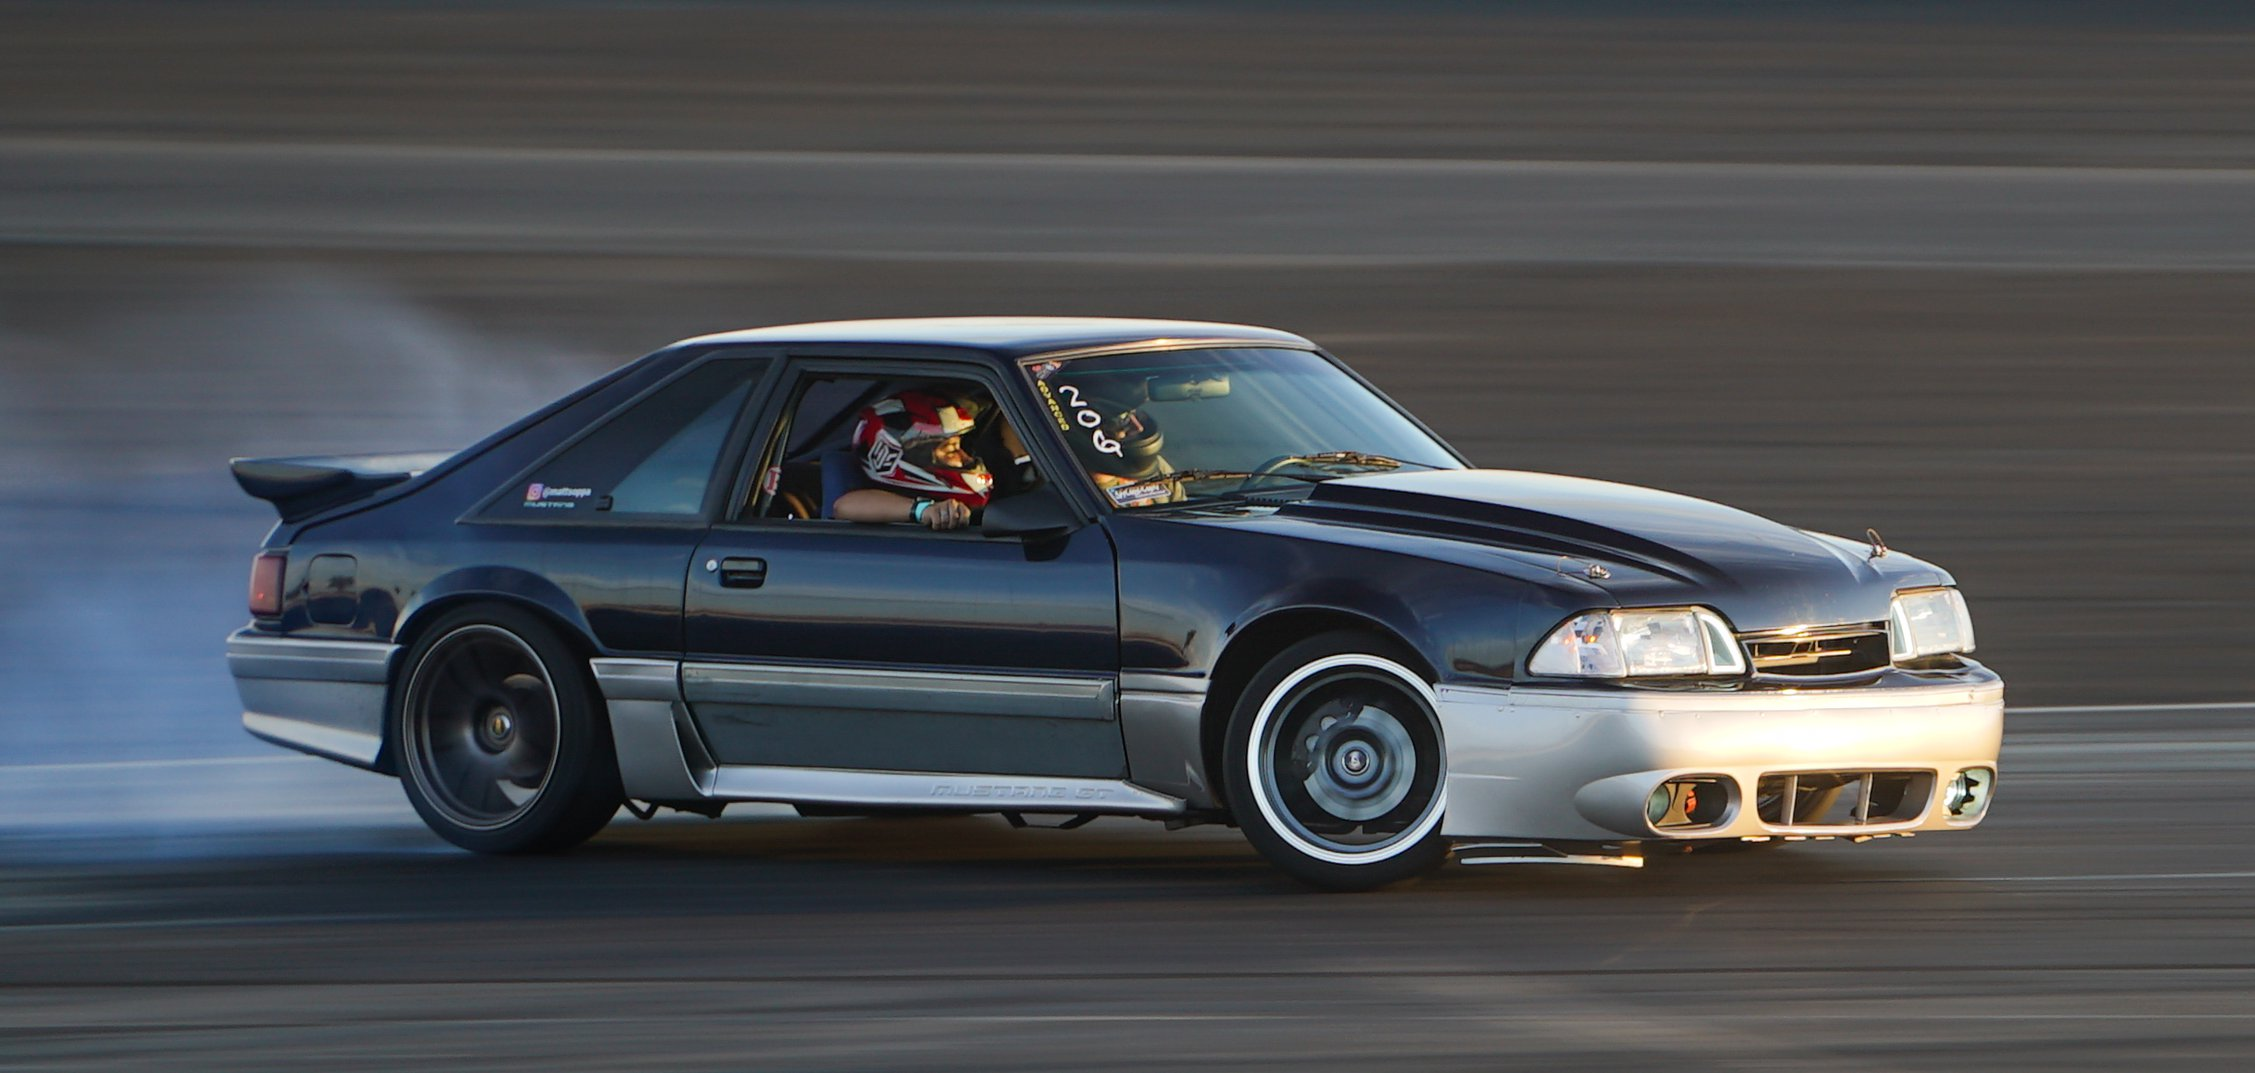 Fox-body Mustang with a Coyote engine